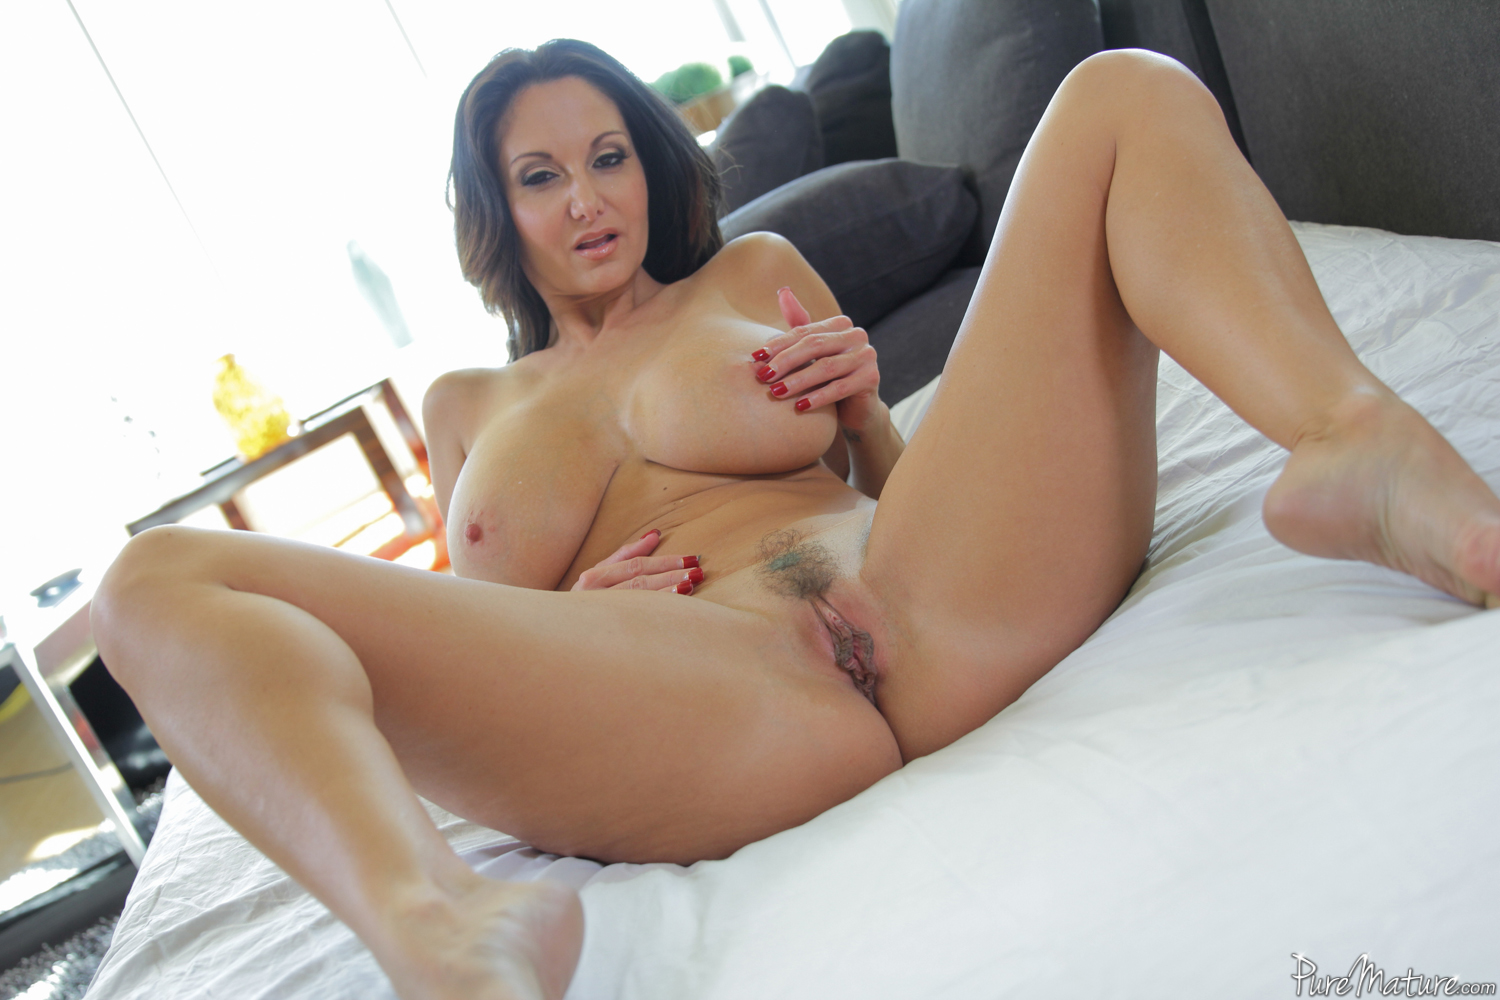 Thanks Ava addams nude